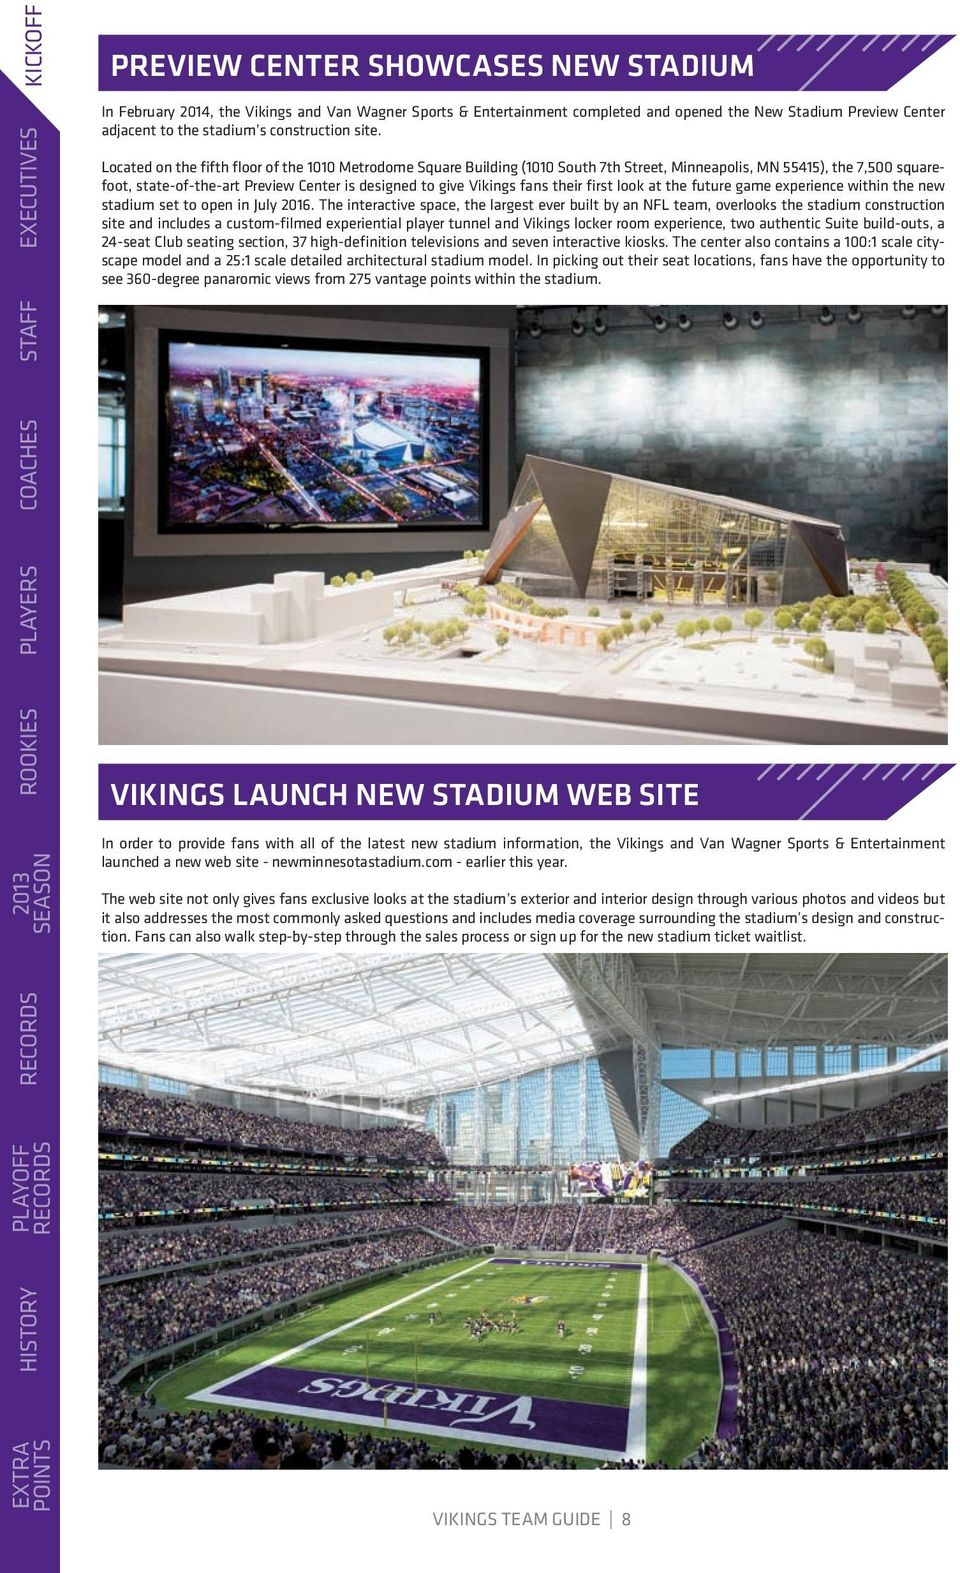 Located on the fifth floor of the 1010 Metrodome Square Building (1010 South 7th Street, Minneapolis, MN 55415), the 7,500 squarefoot, state-of-the-art Preview Center is designed to give Vikings fans